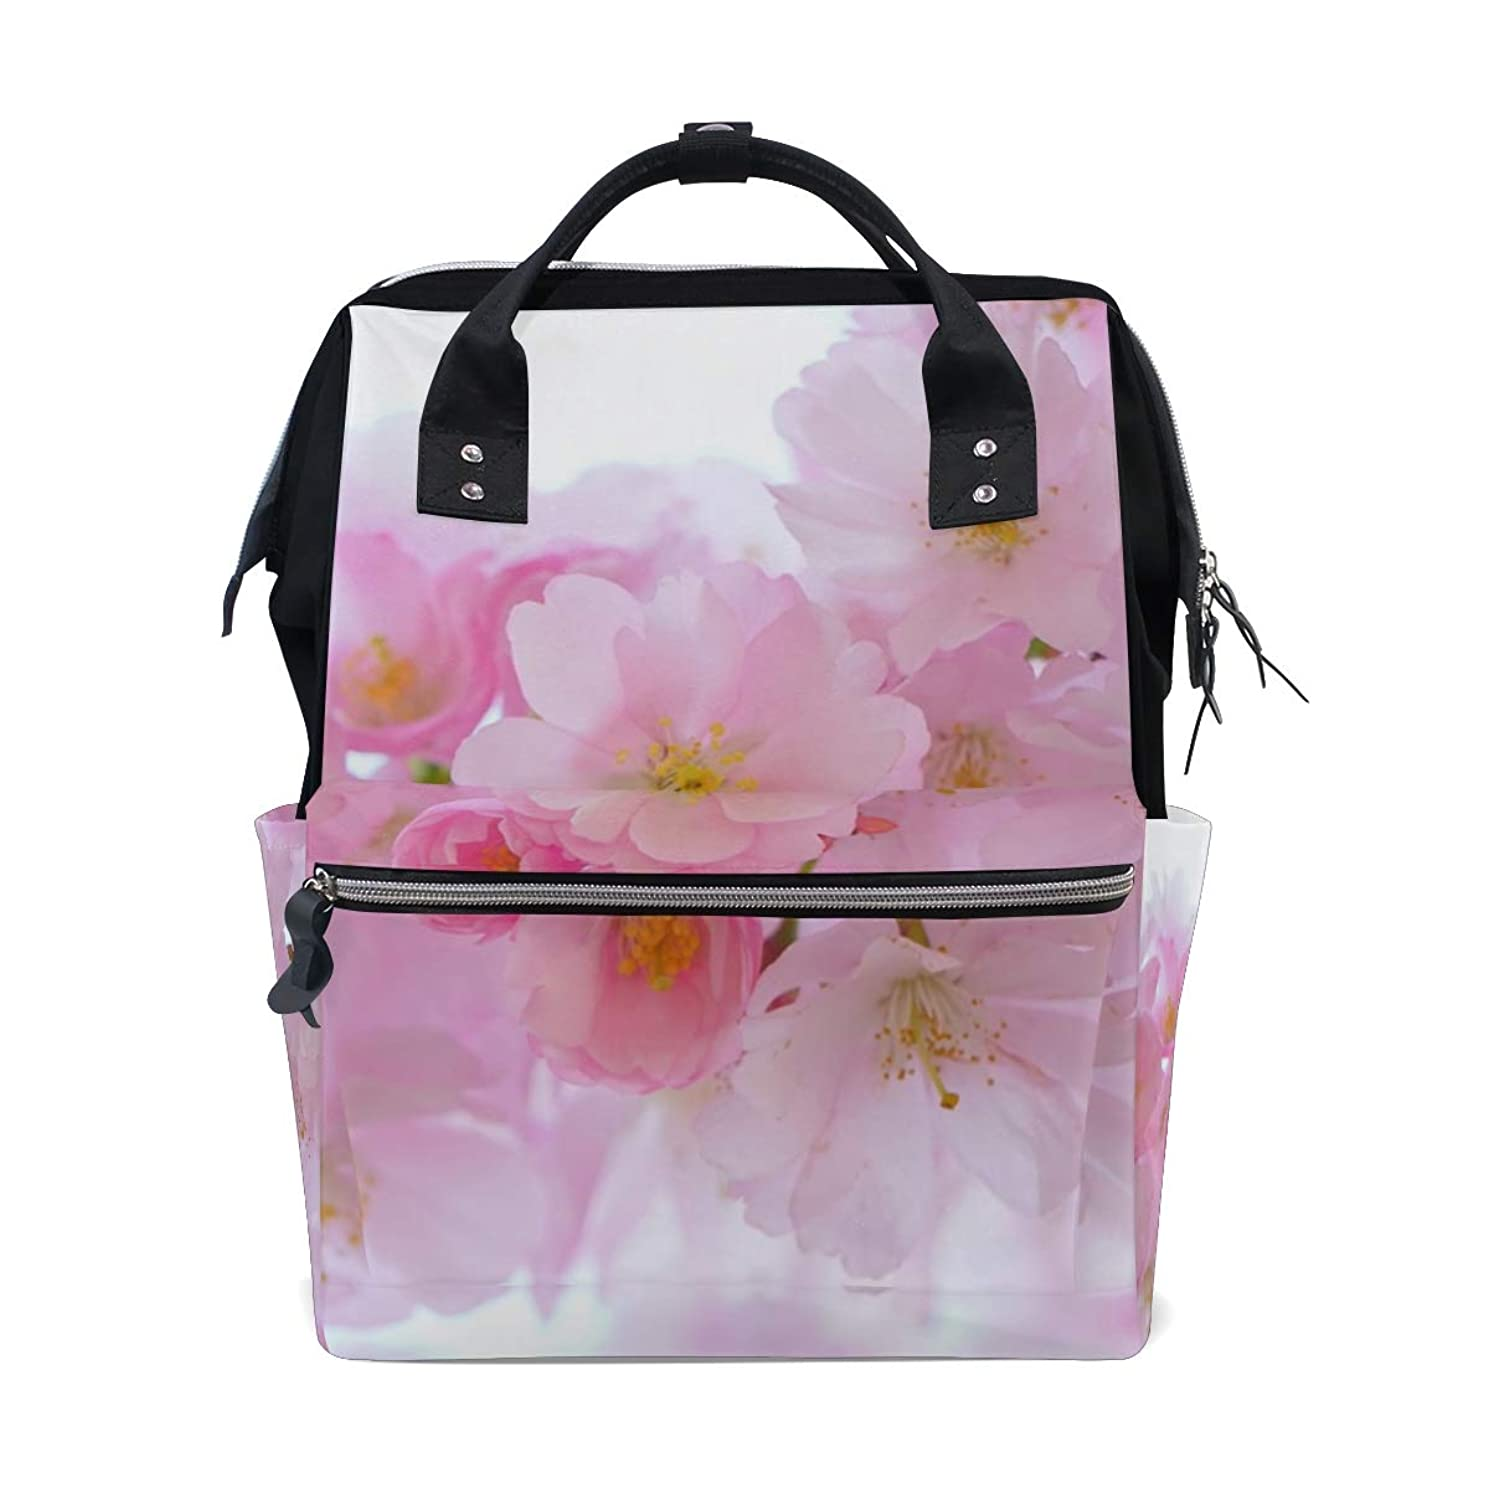 Pink Cherry Flowers School Backpack Large Capacity Mummy Bags Laptop Handbag Casual Travel Rucksack Satchel For Women Men Adult Teen Children